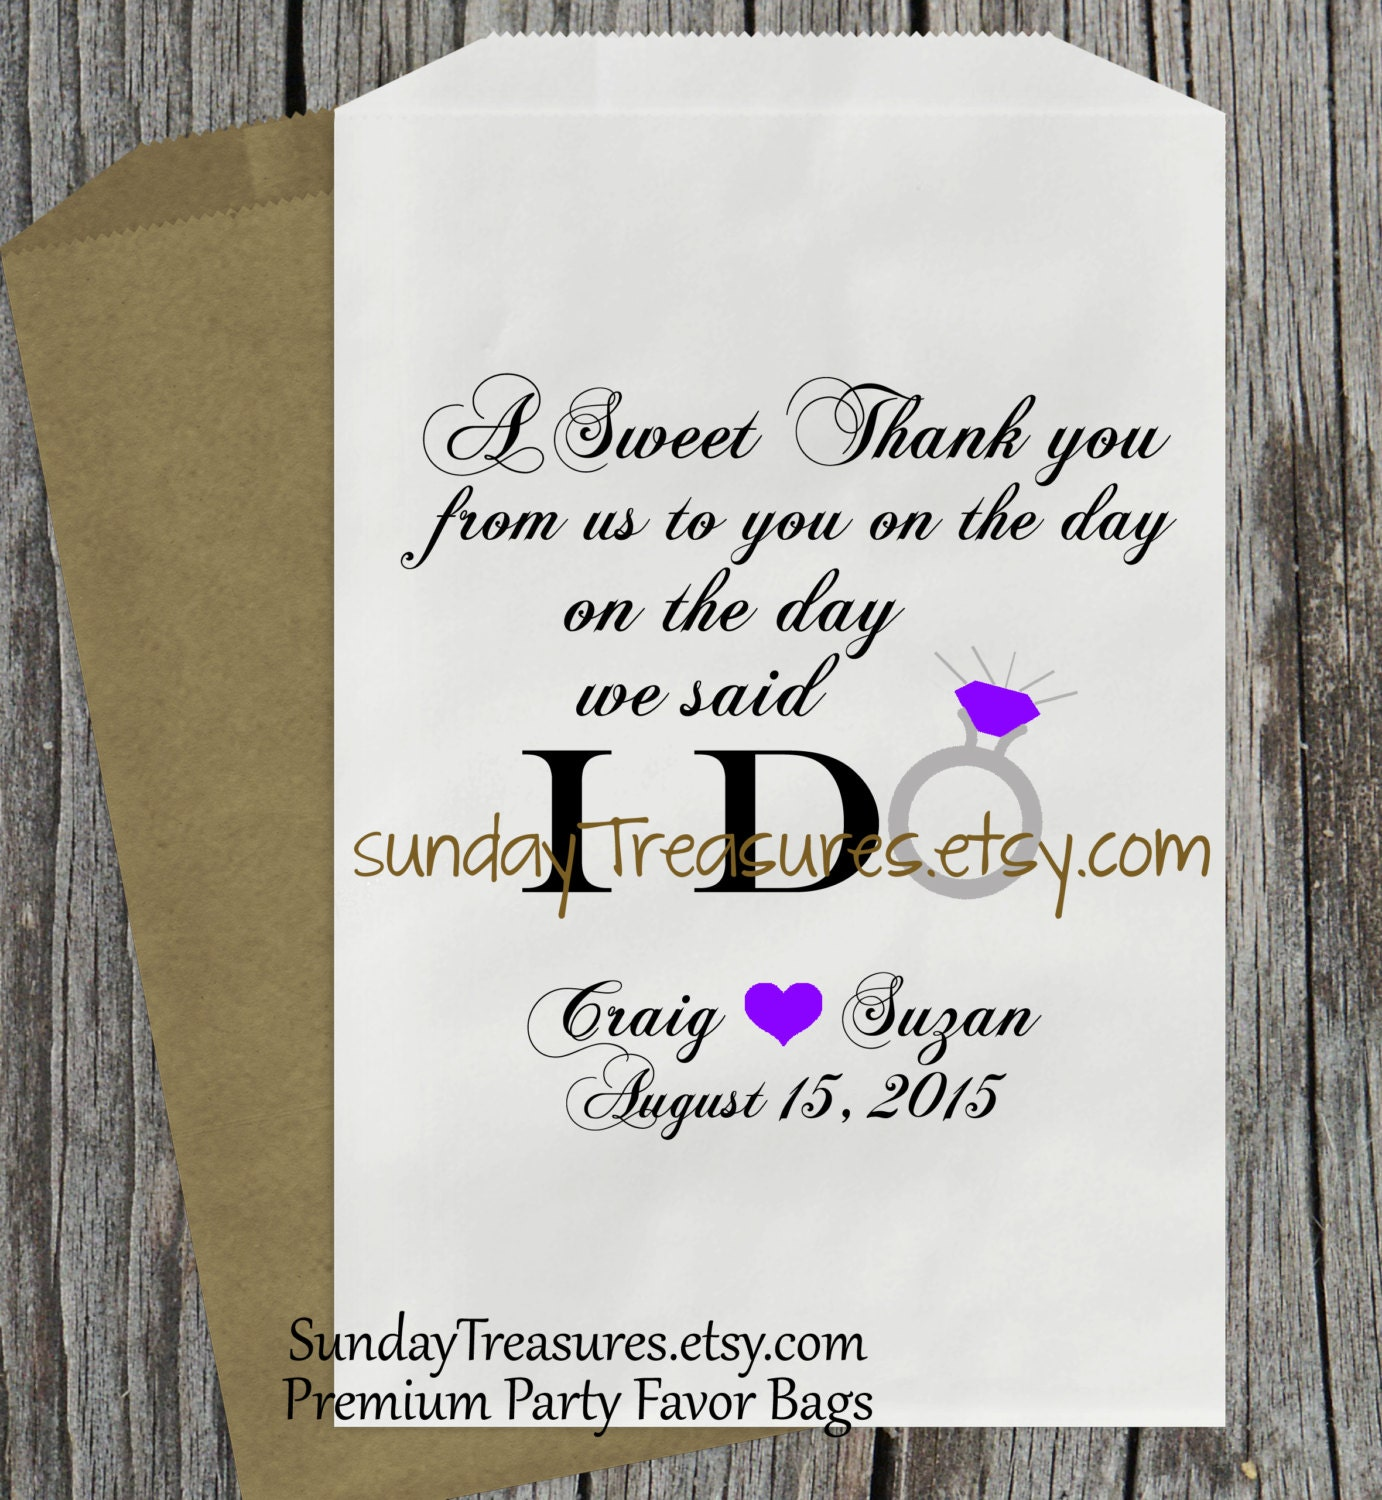 Thank You Wedding Gift Quotes : 12Pc WEDDING Favor Bags / A Sweet Thank You from us to You on